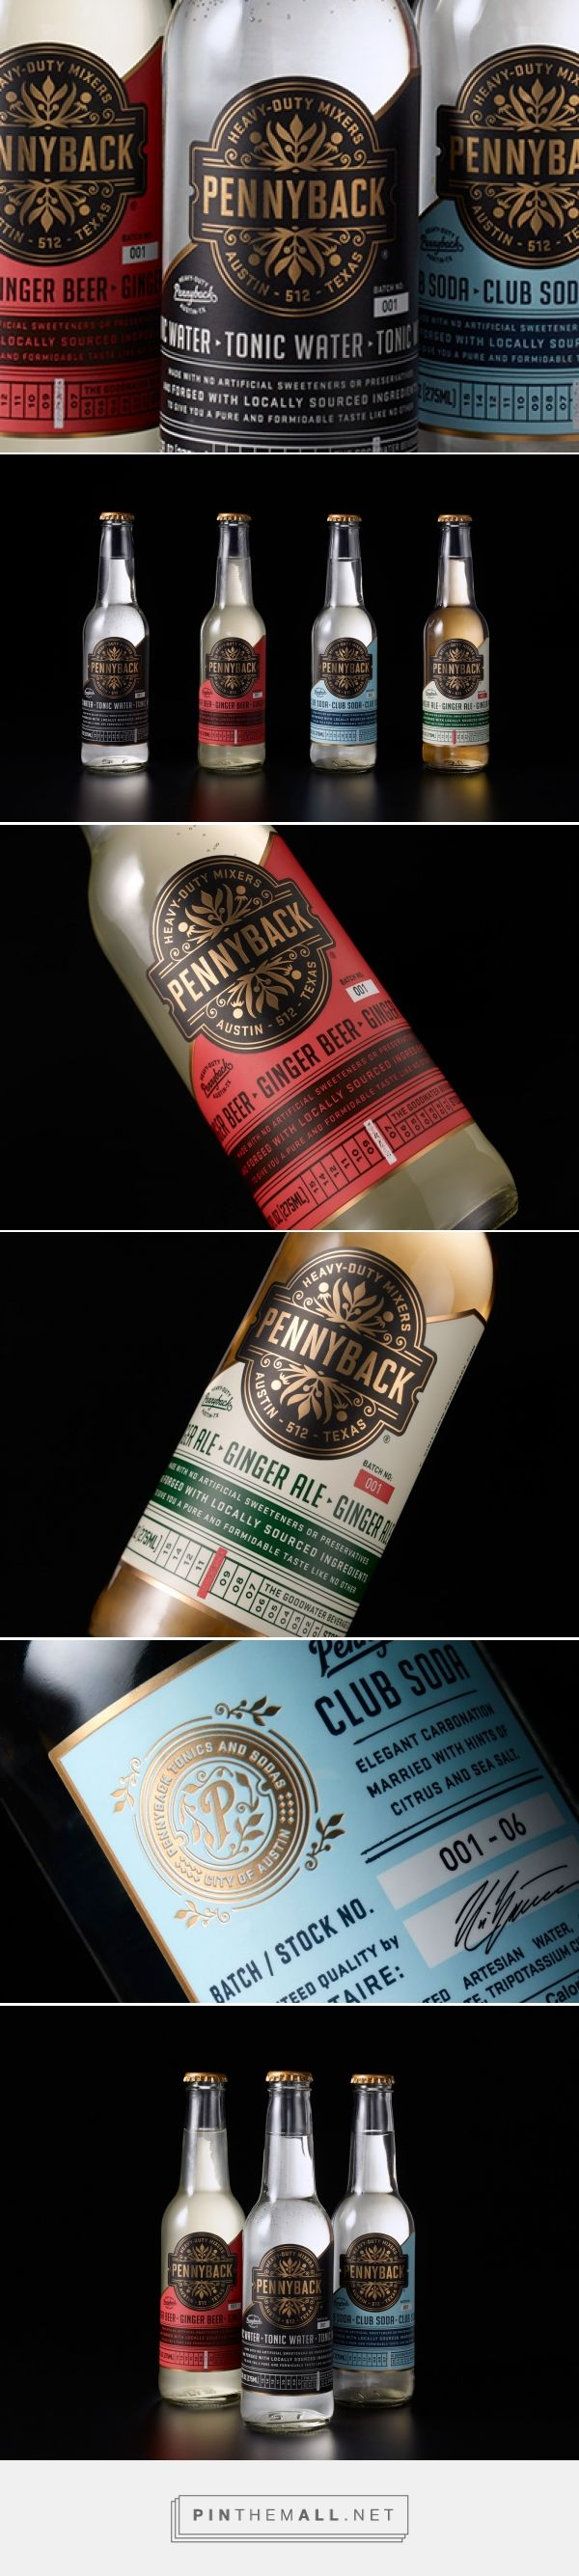 Pennyback mixers packaging design by Chad Michael Studio - http://www.packagingoftheworld.com/2018/02/pennyback.html